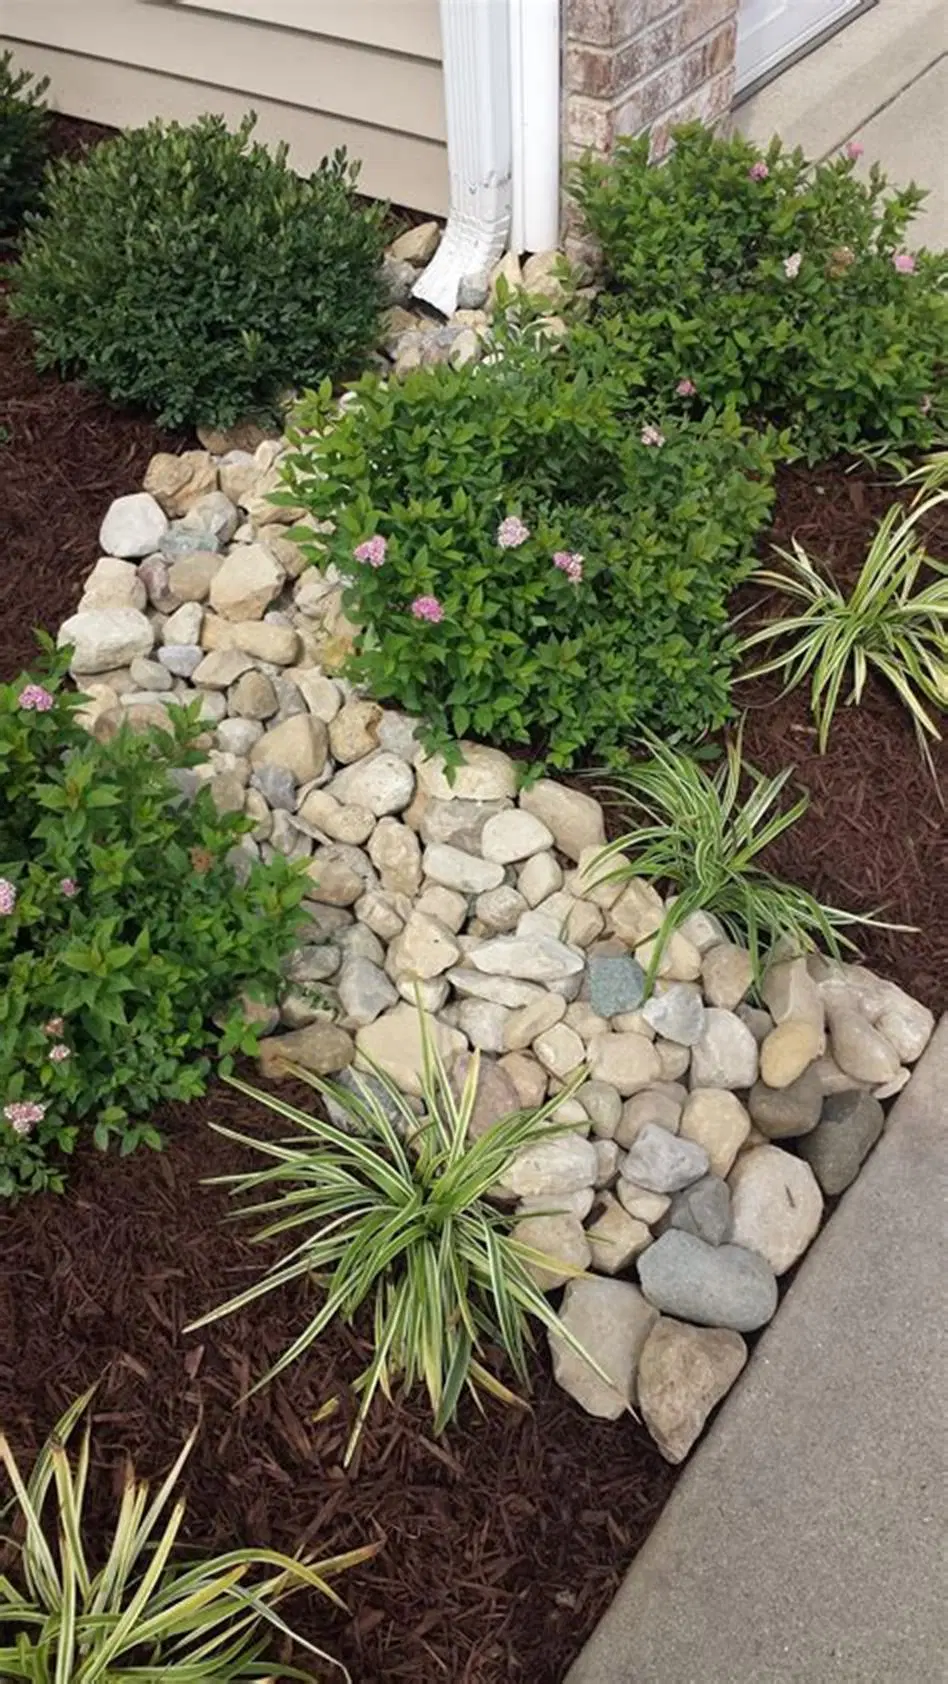 37 Amazing Mulch And Rocks Landscaping Ideas 7 In 2020 With